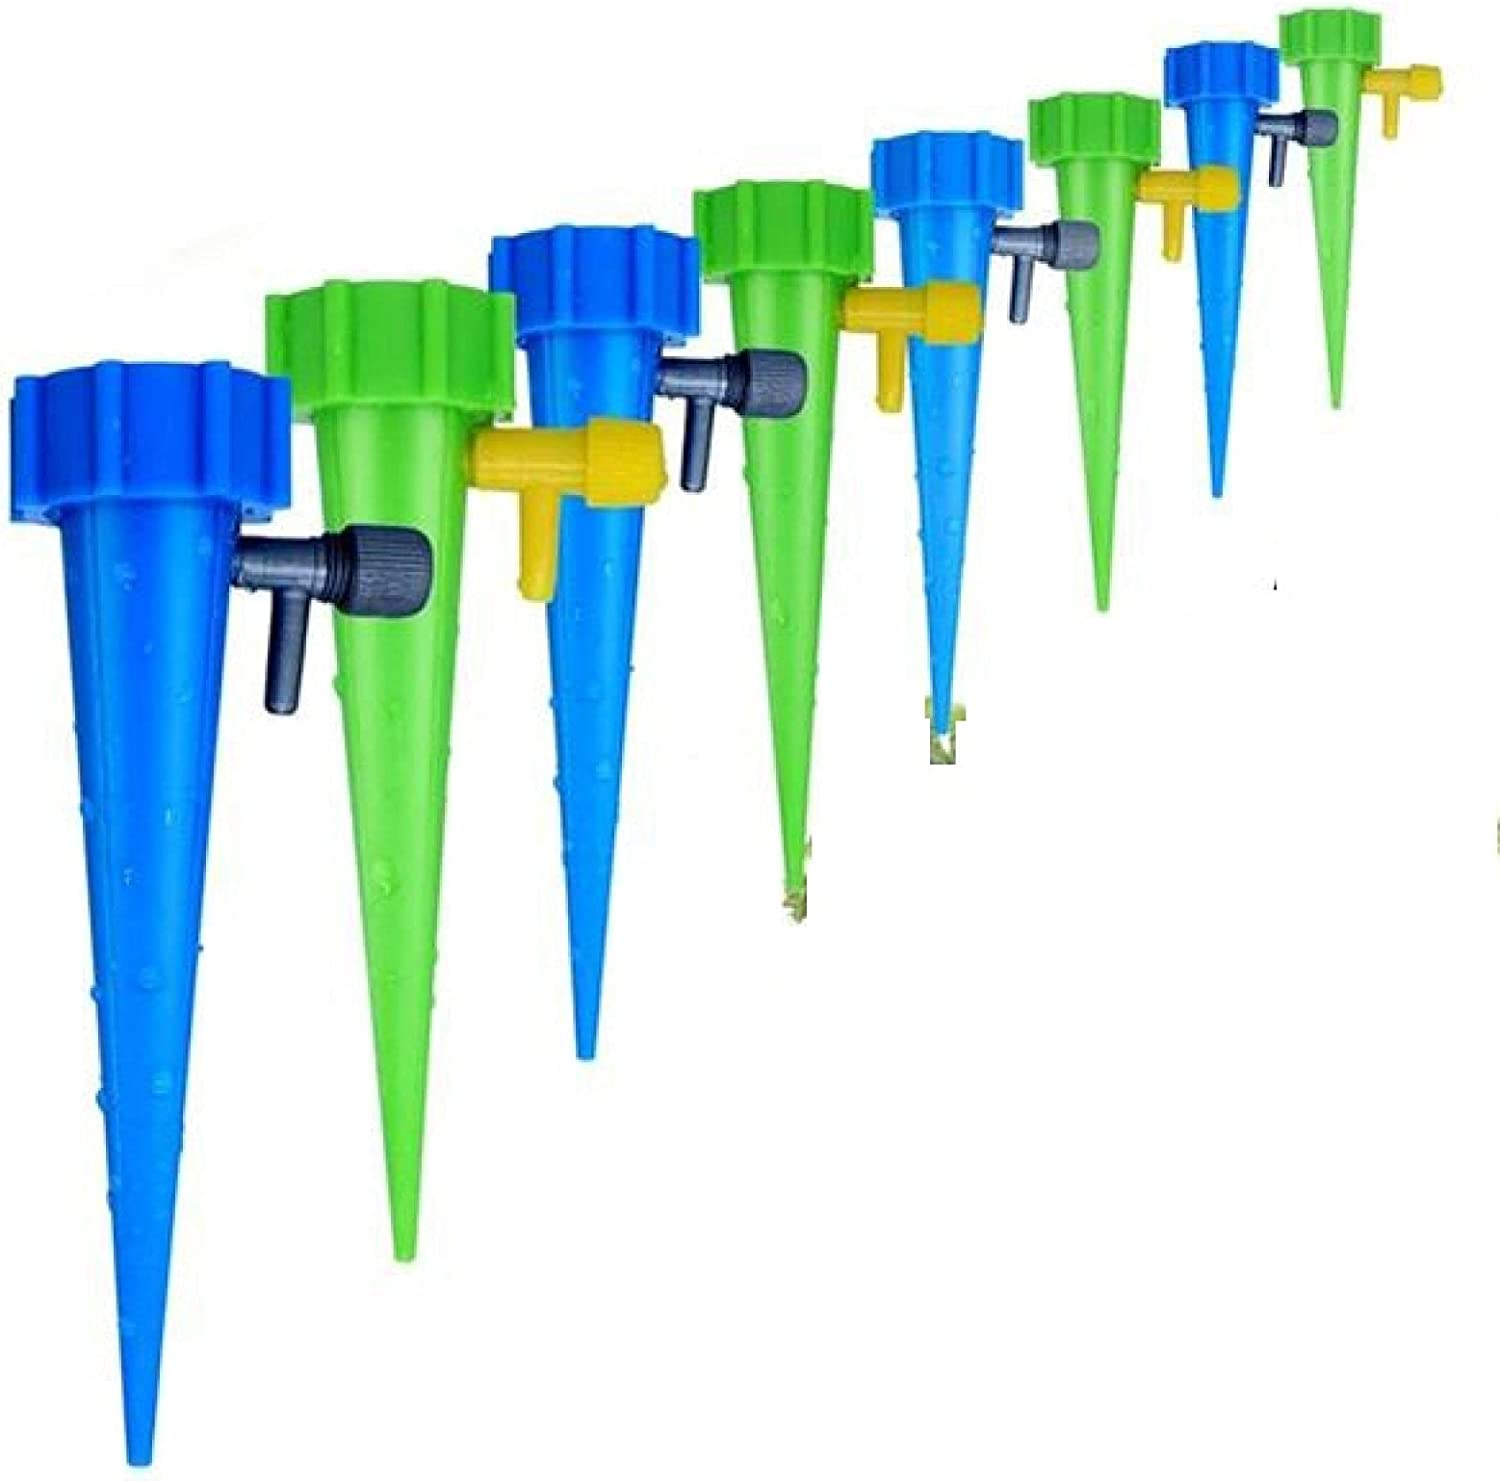 Plant Special price Irrigation Quality inspection Drippers Self Watering Devices 6 30 12 18